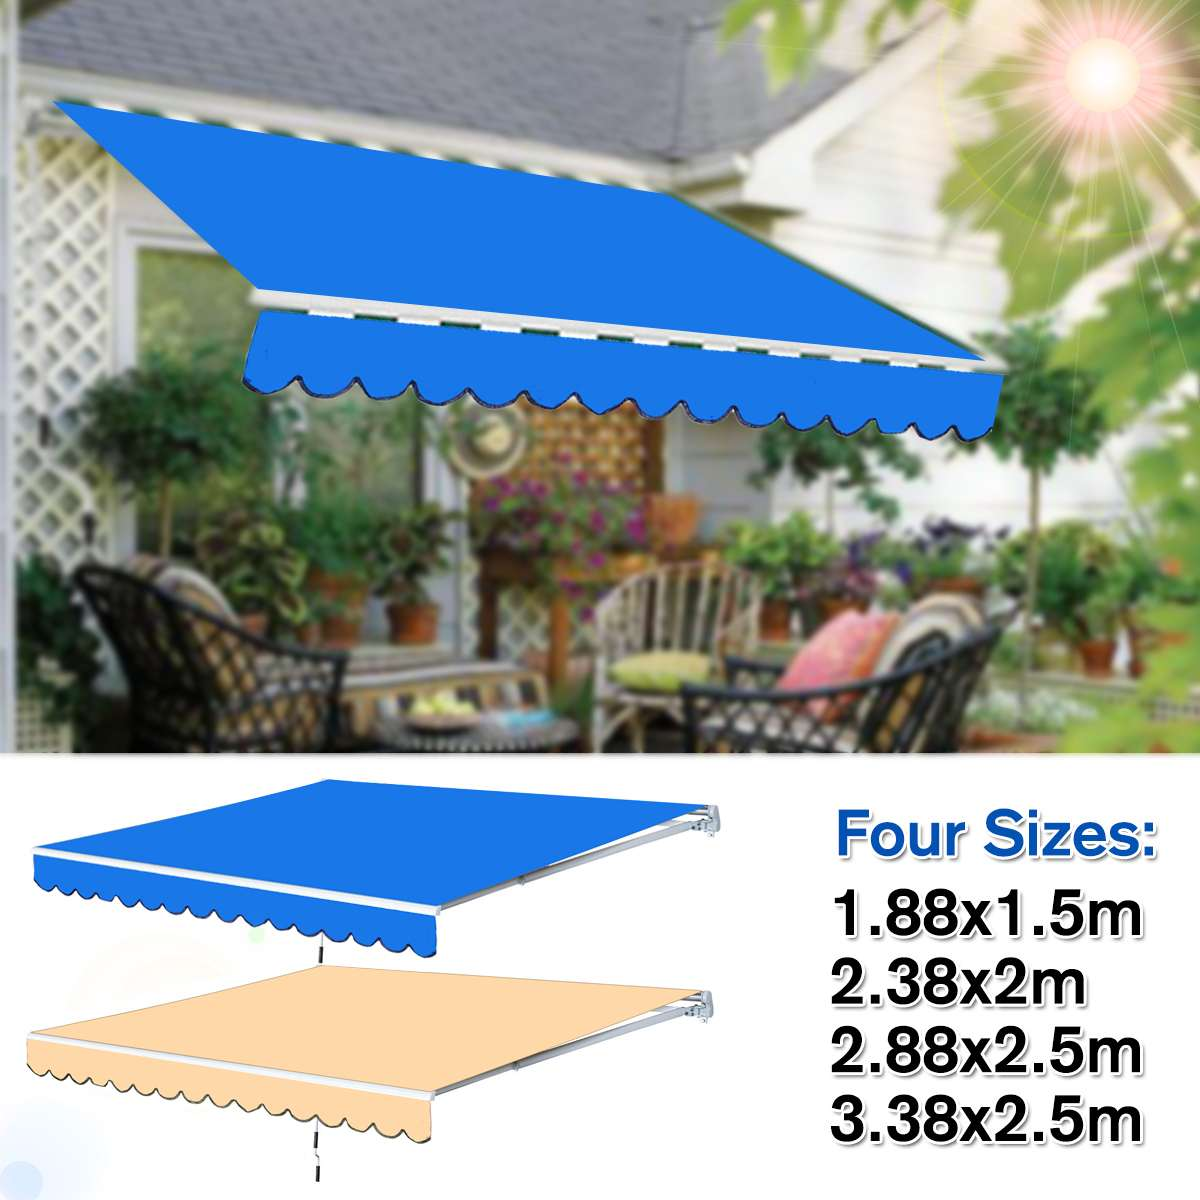 Waterproof Top Cover Canopy Replacement For Garden Patio Courtyard Outdoor Canopy Awning Sun Shade Shelter Fabric Cover Frill